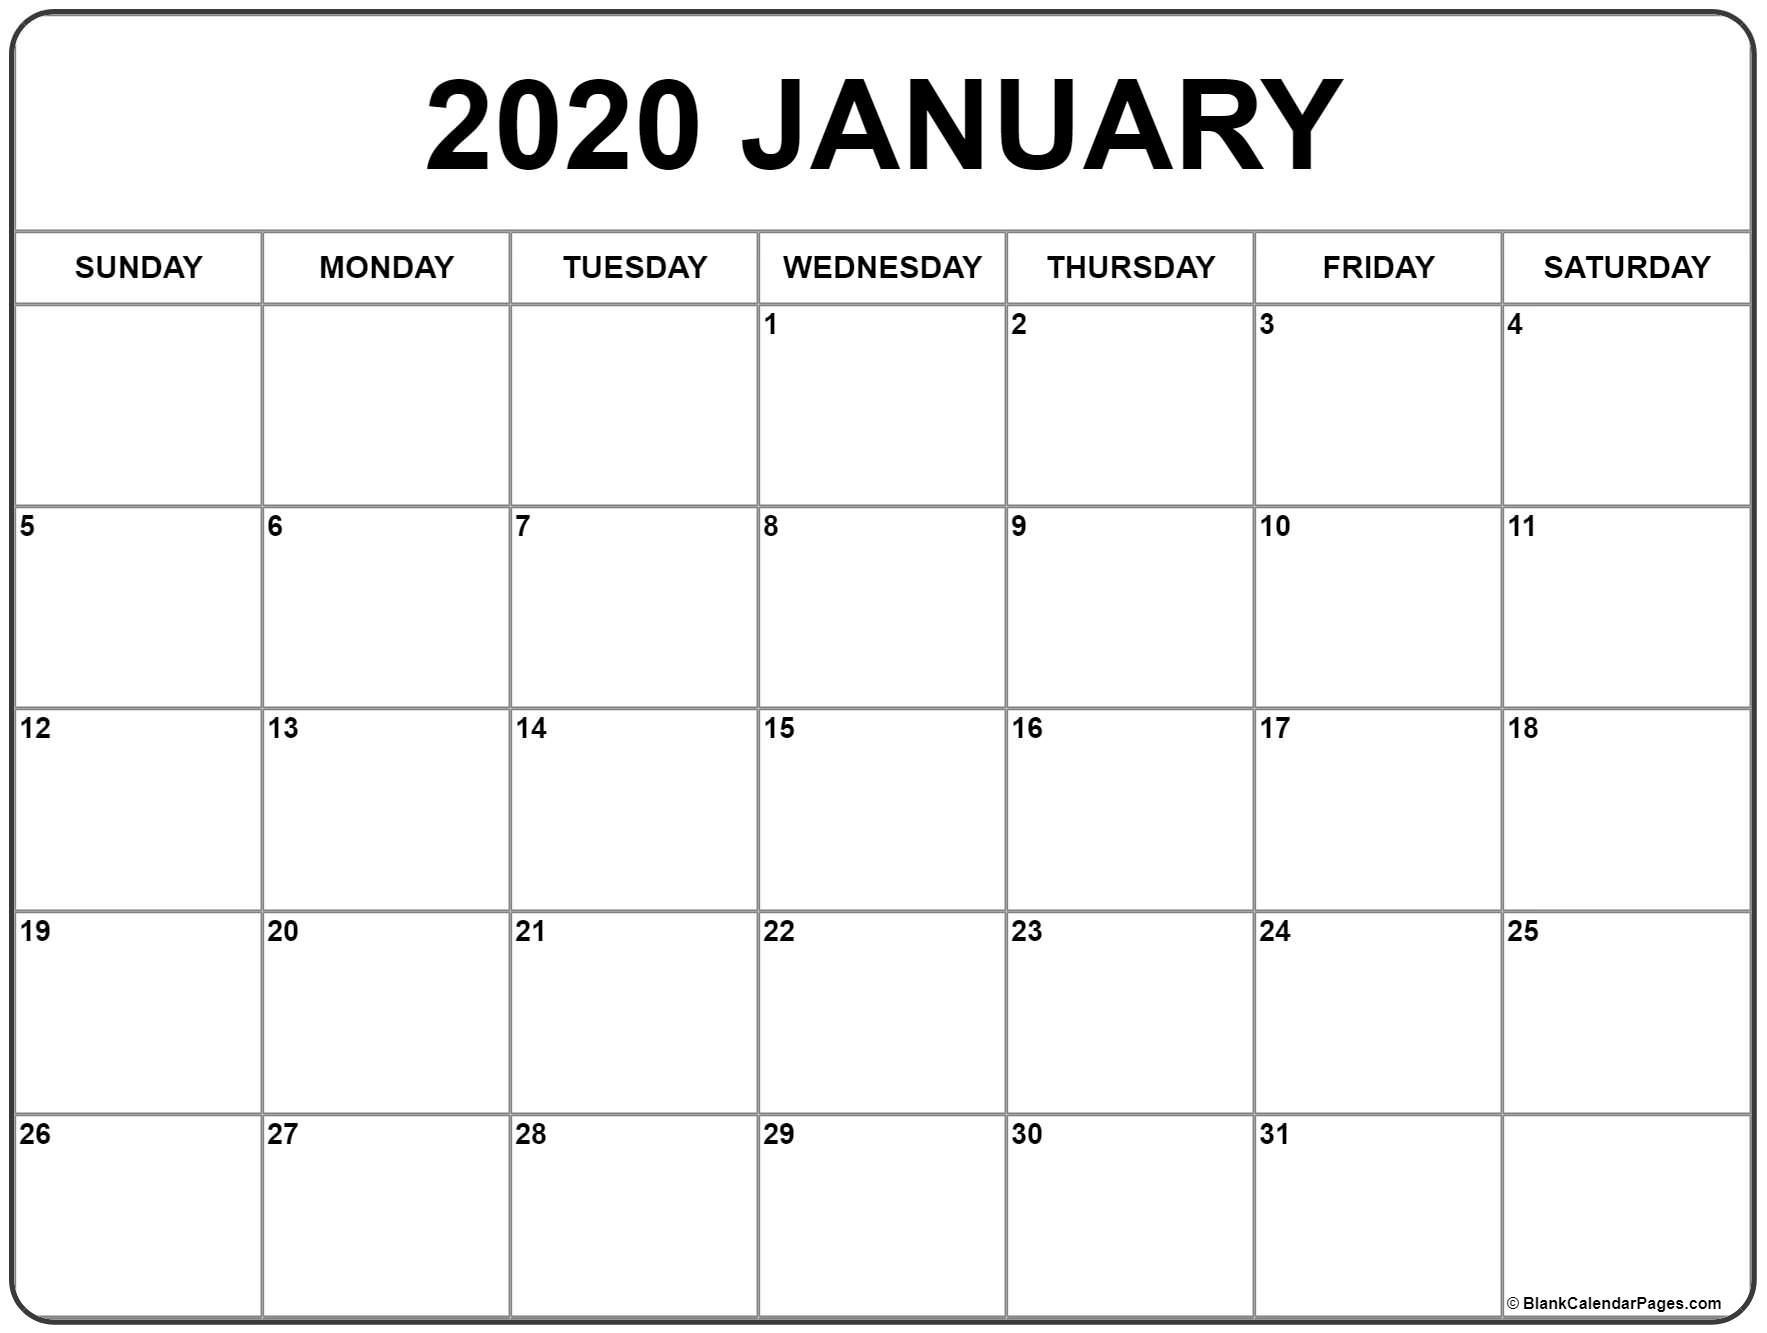 January 2020 Calendar | Free Printable Monthly Calendars-Blank January 2020 Calendar Printable